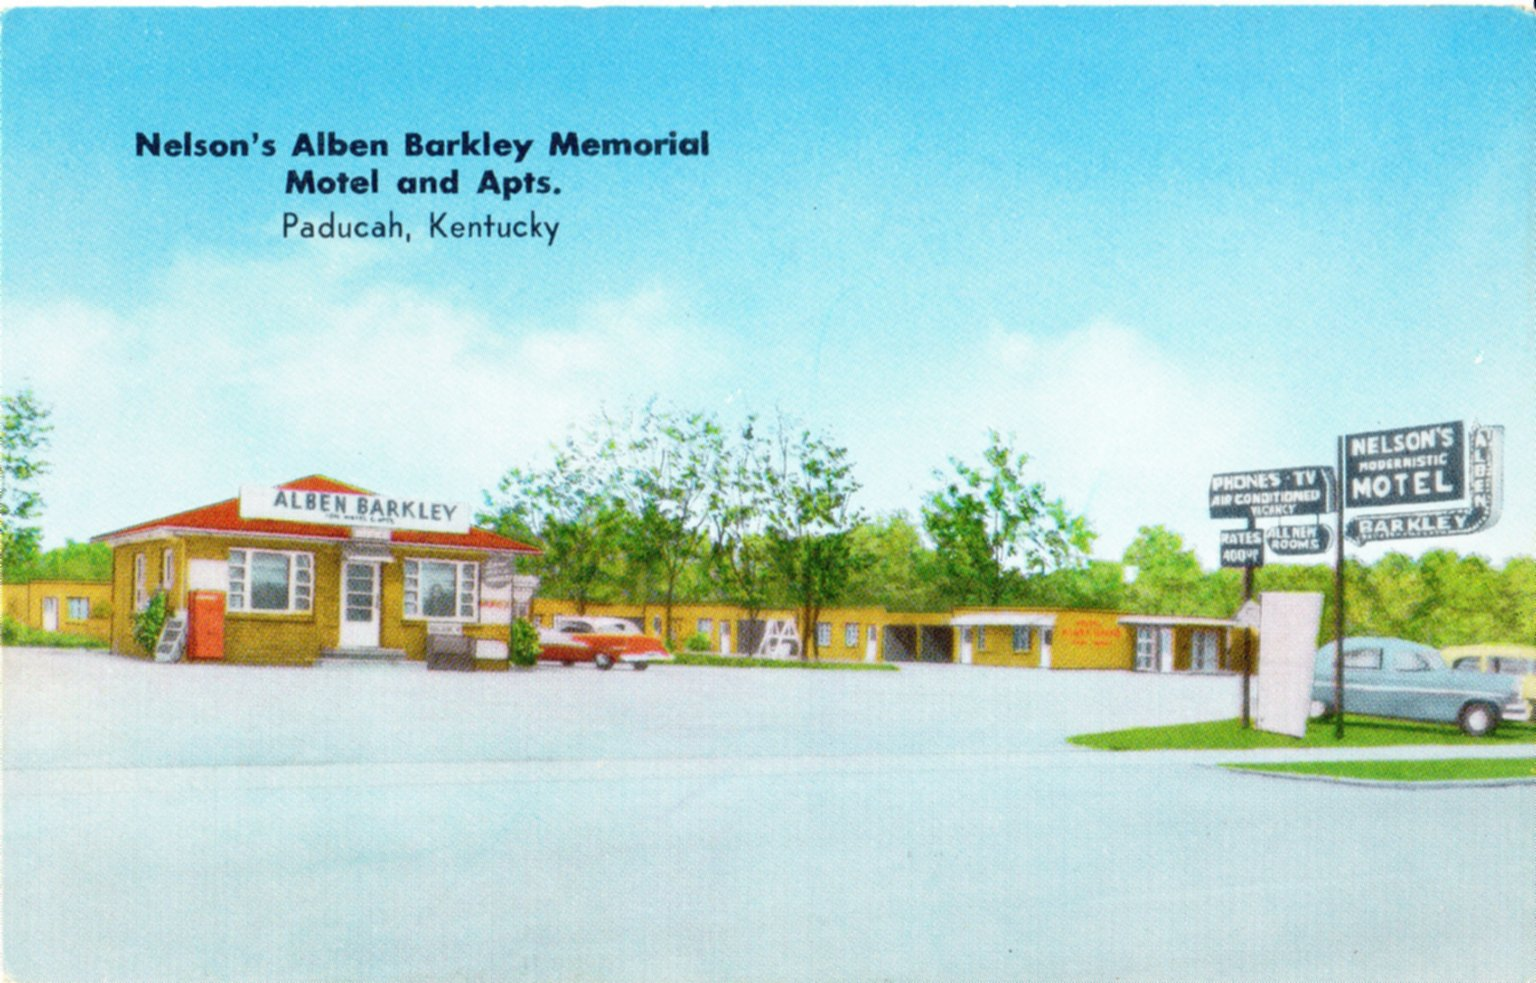 Nelson's Alben Barkley Memorial Motel and Apts., Paducah, Kentucky